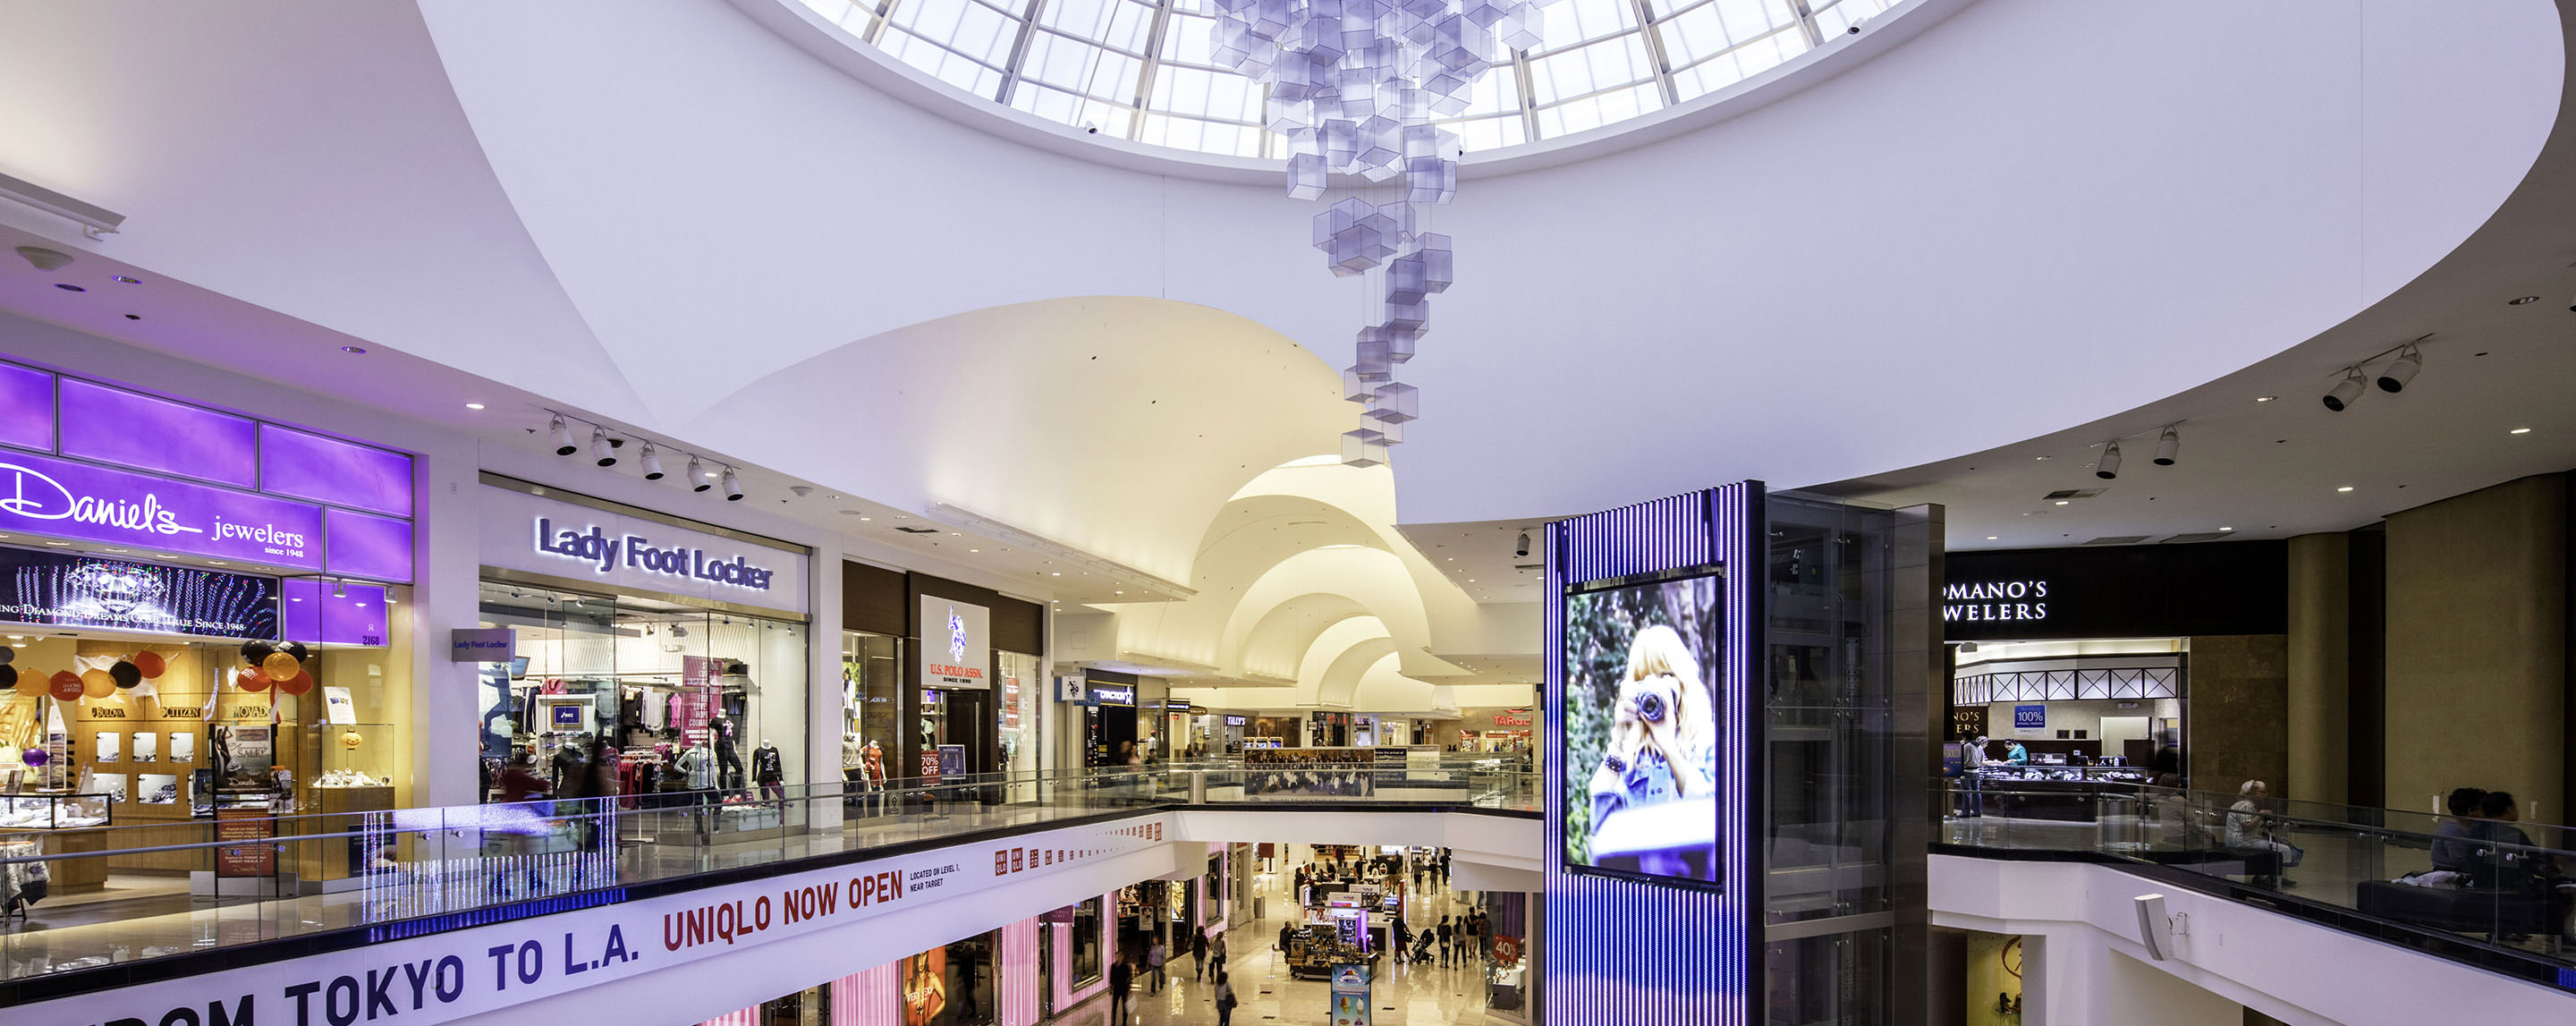 As is the case with all large shopping malls, the Glendale Galleria is place where you can get the things you need when you need them. There is a wide variety of shops and eating establishments in this mall. So, it is your one stop shop/5().